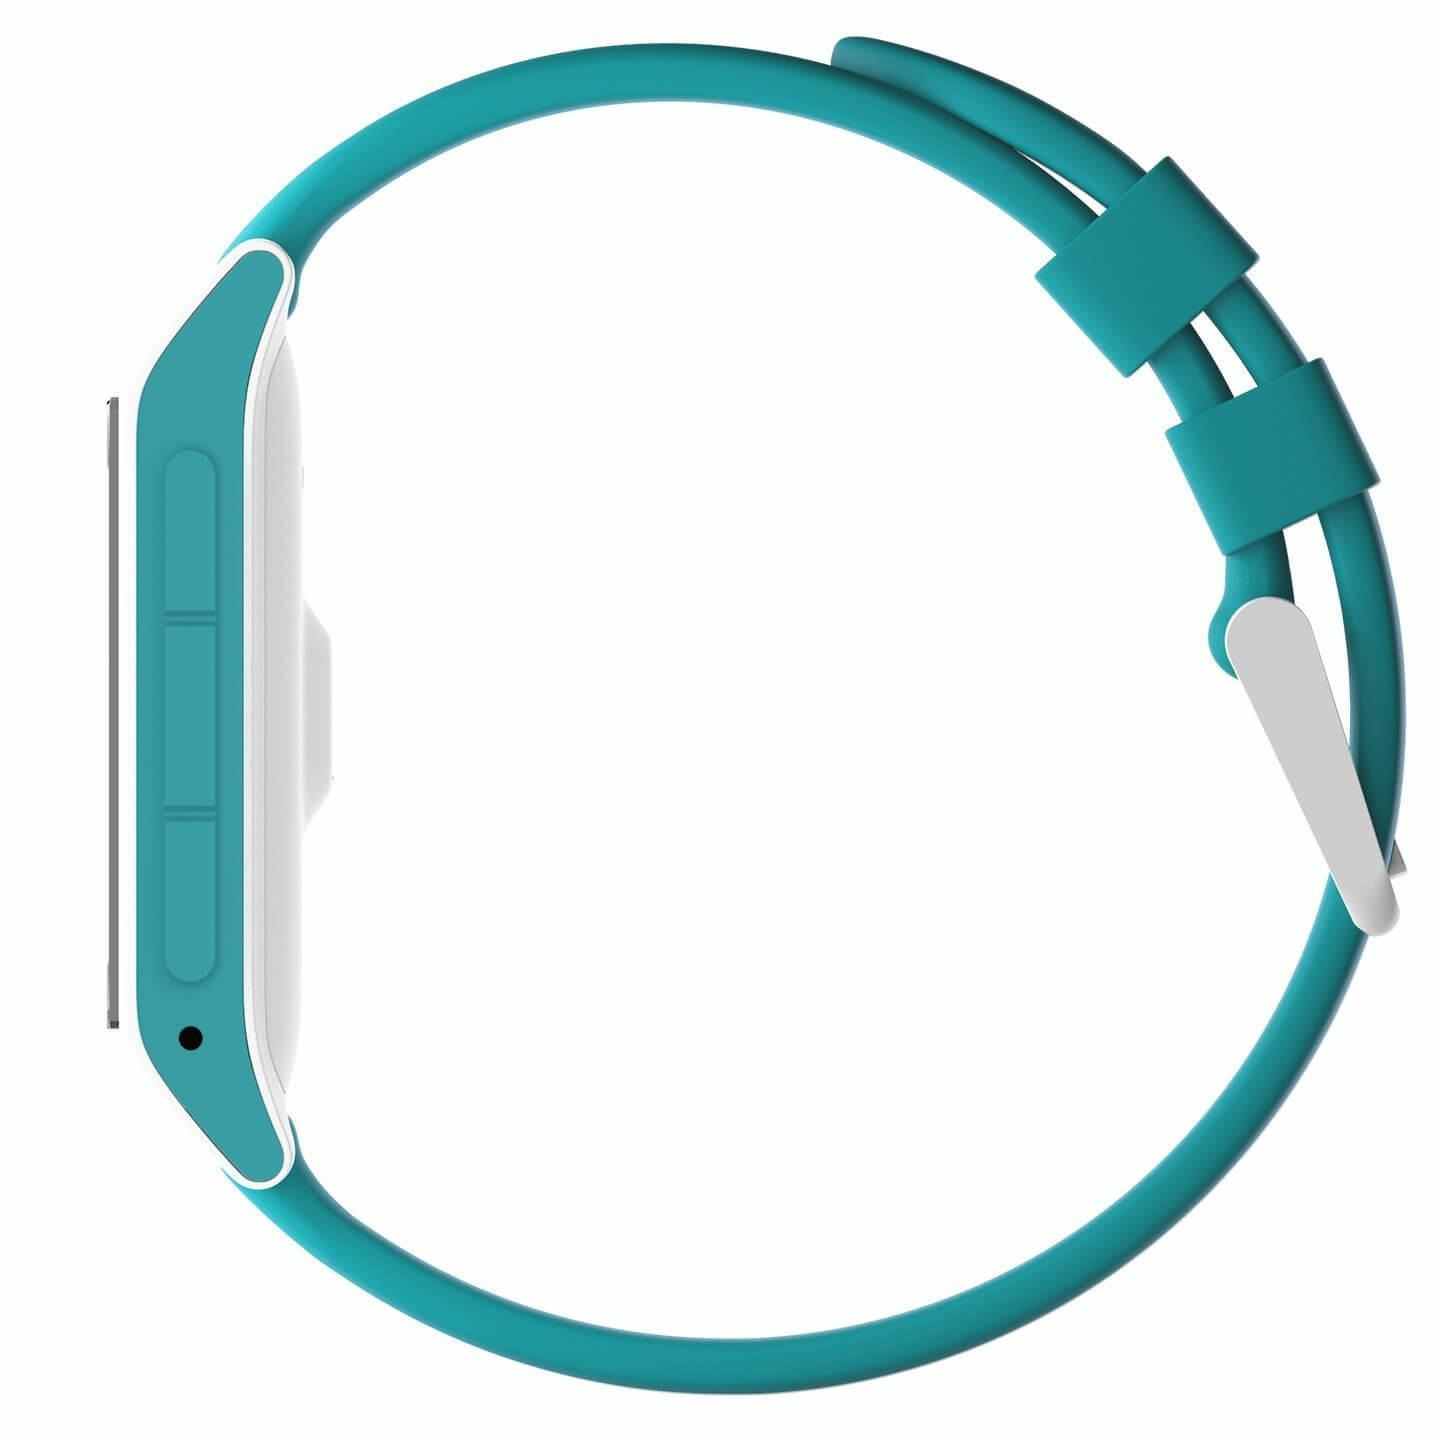 This watch is available in bold colors